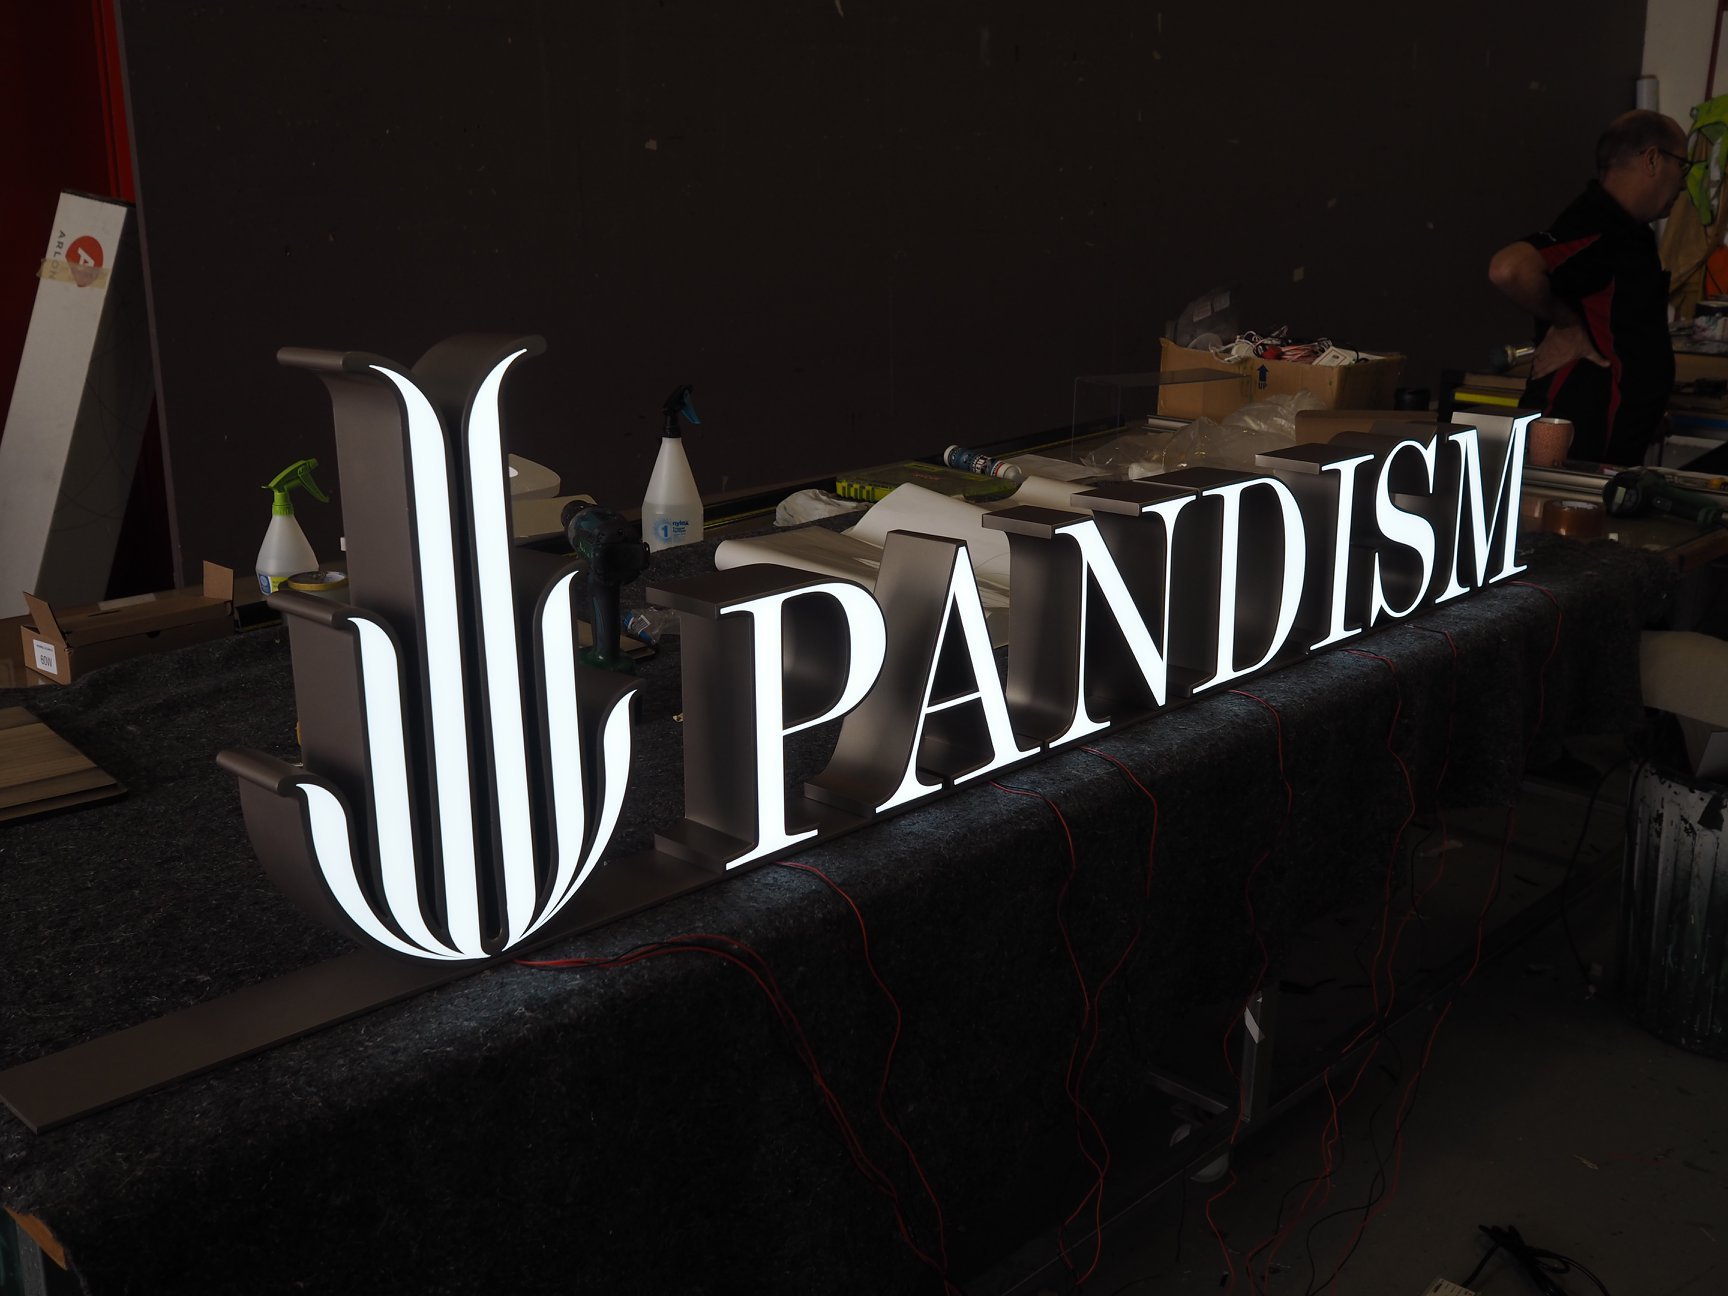 Testing and installing illuminated signage for Pandism